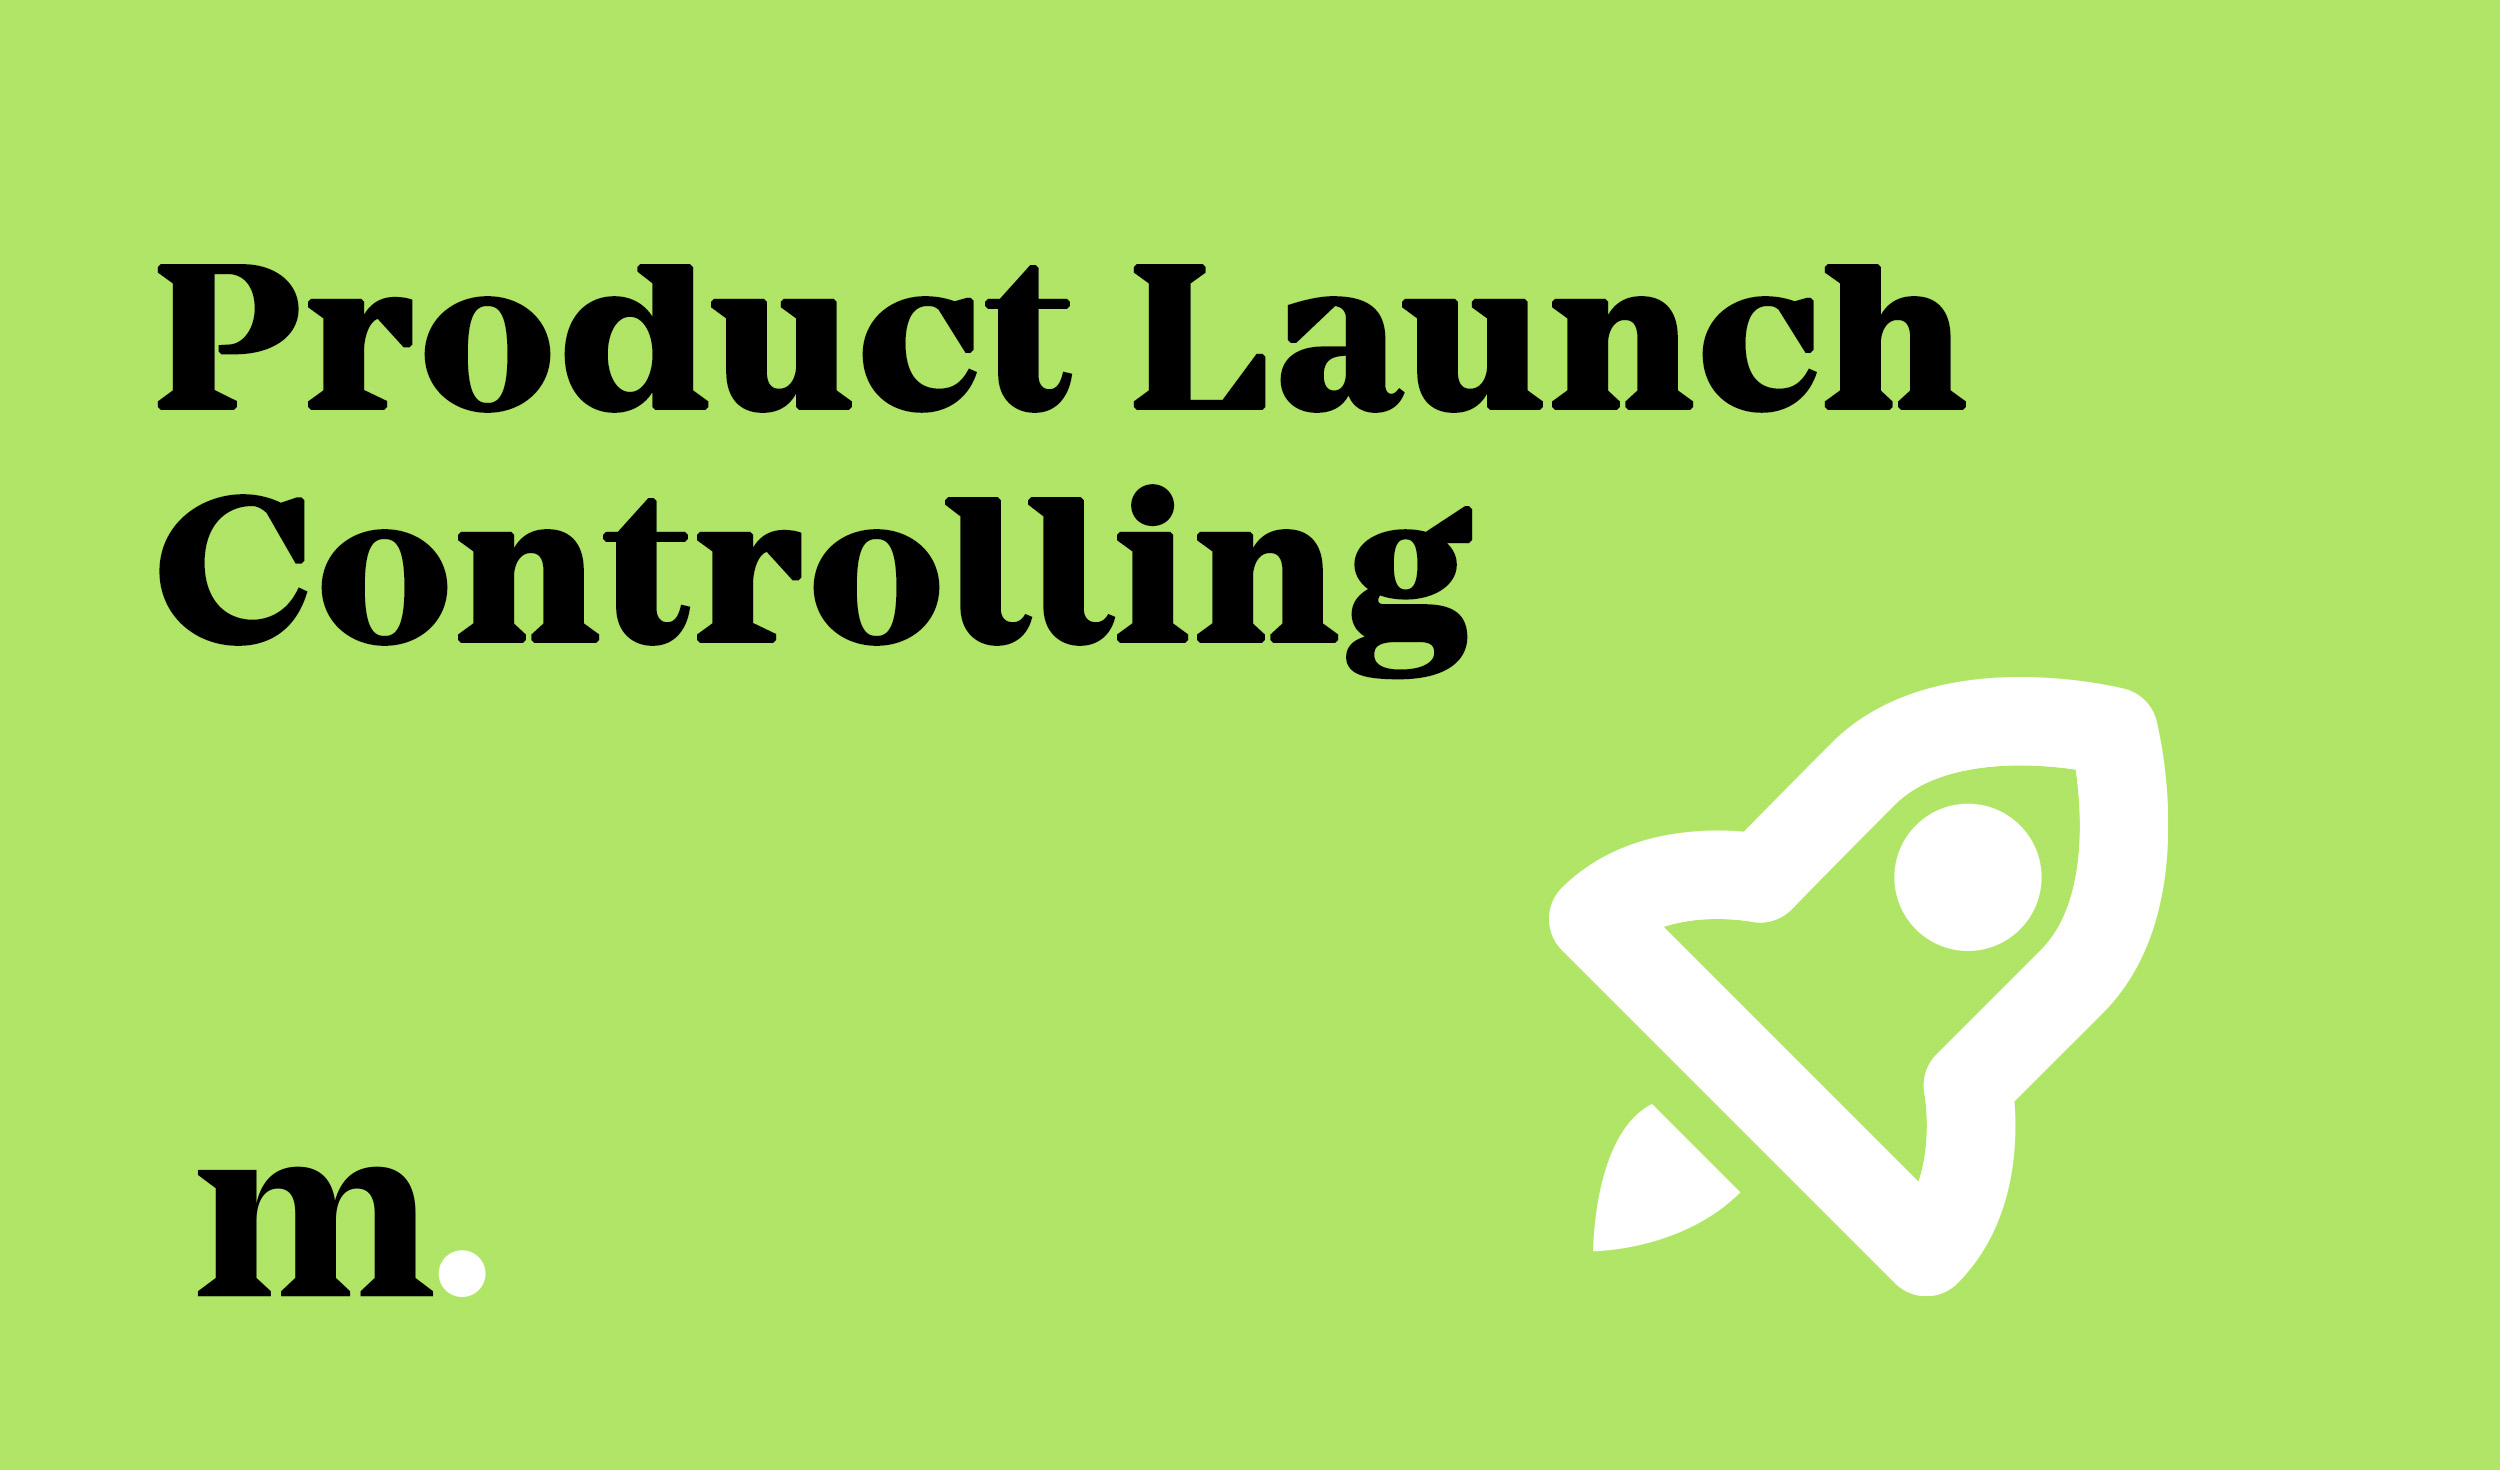 marketagent - Product Launch Controlling